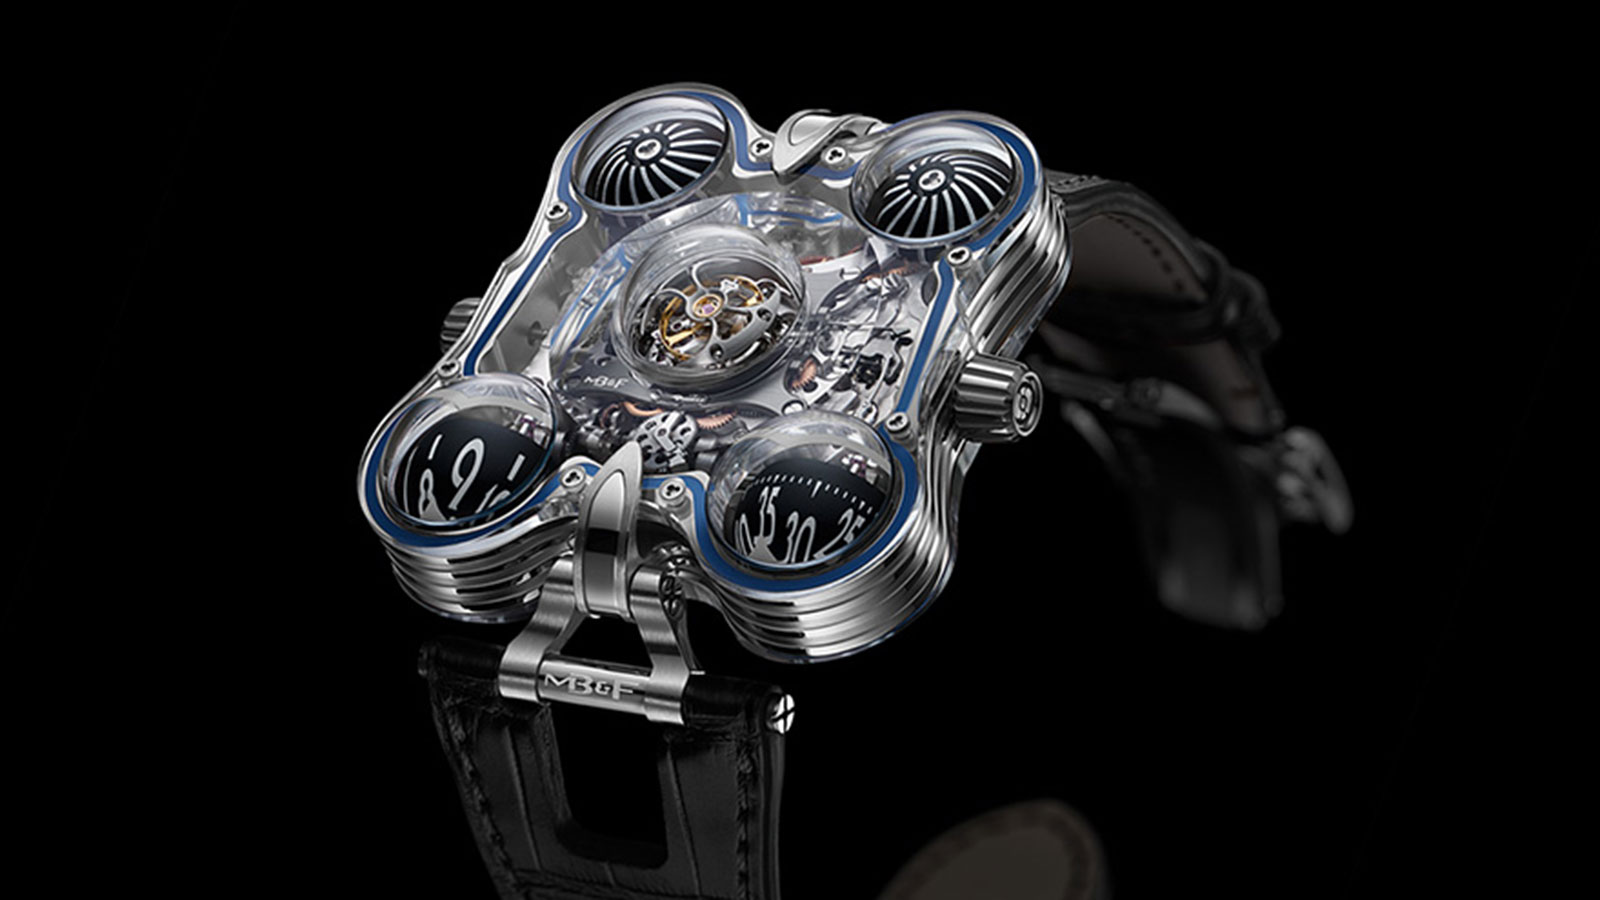 MB&F Horological Machine #6 Men's Watch | futuristic watches for men